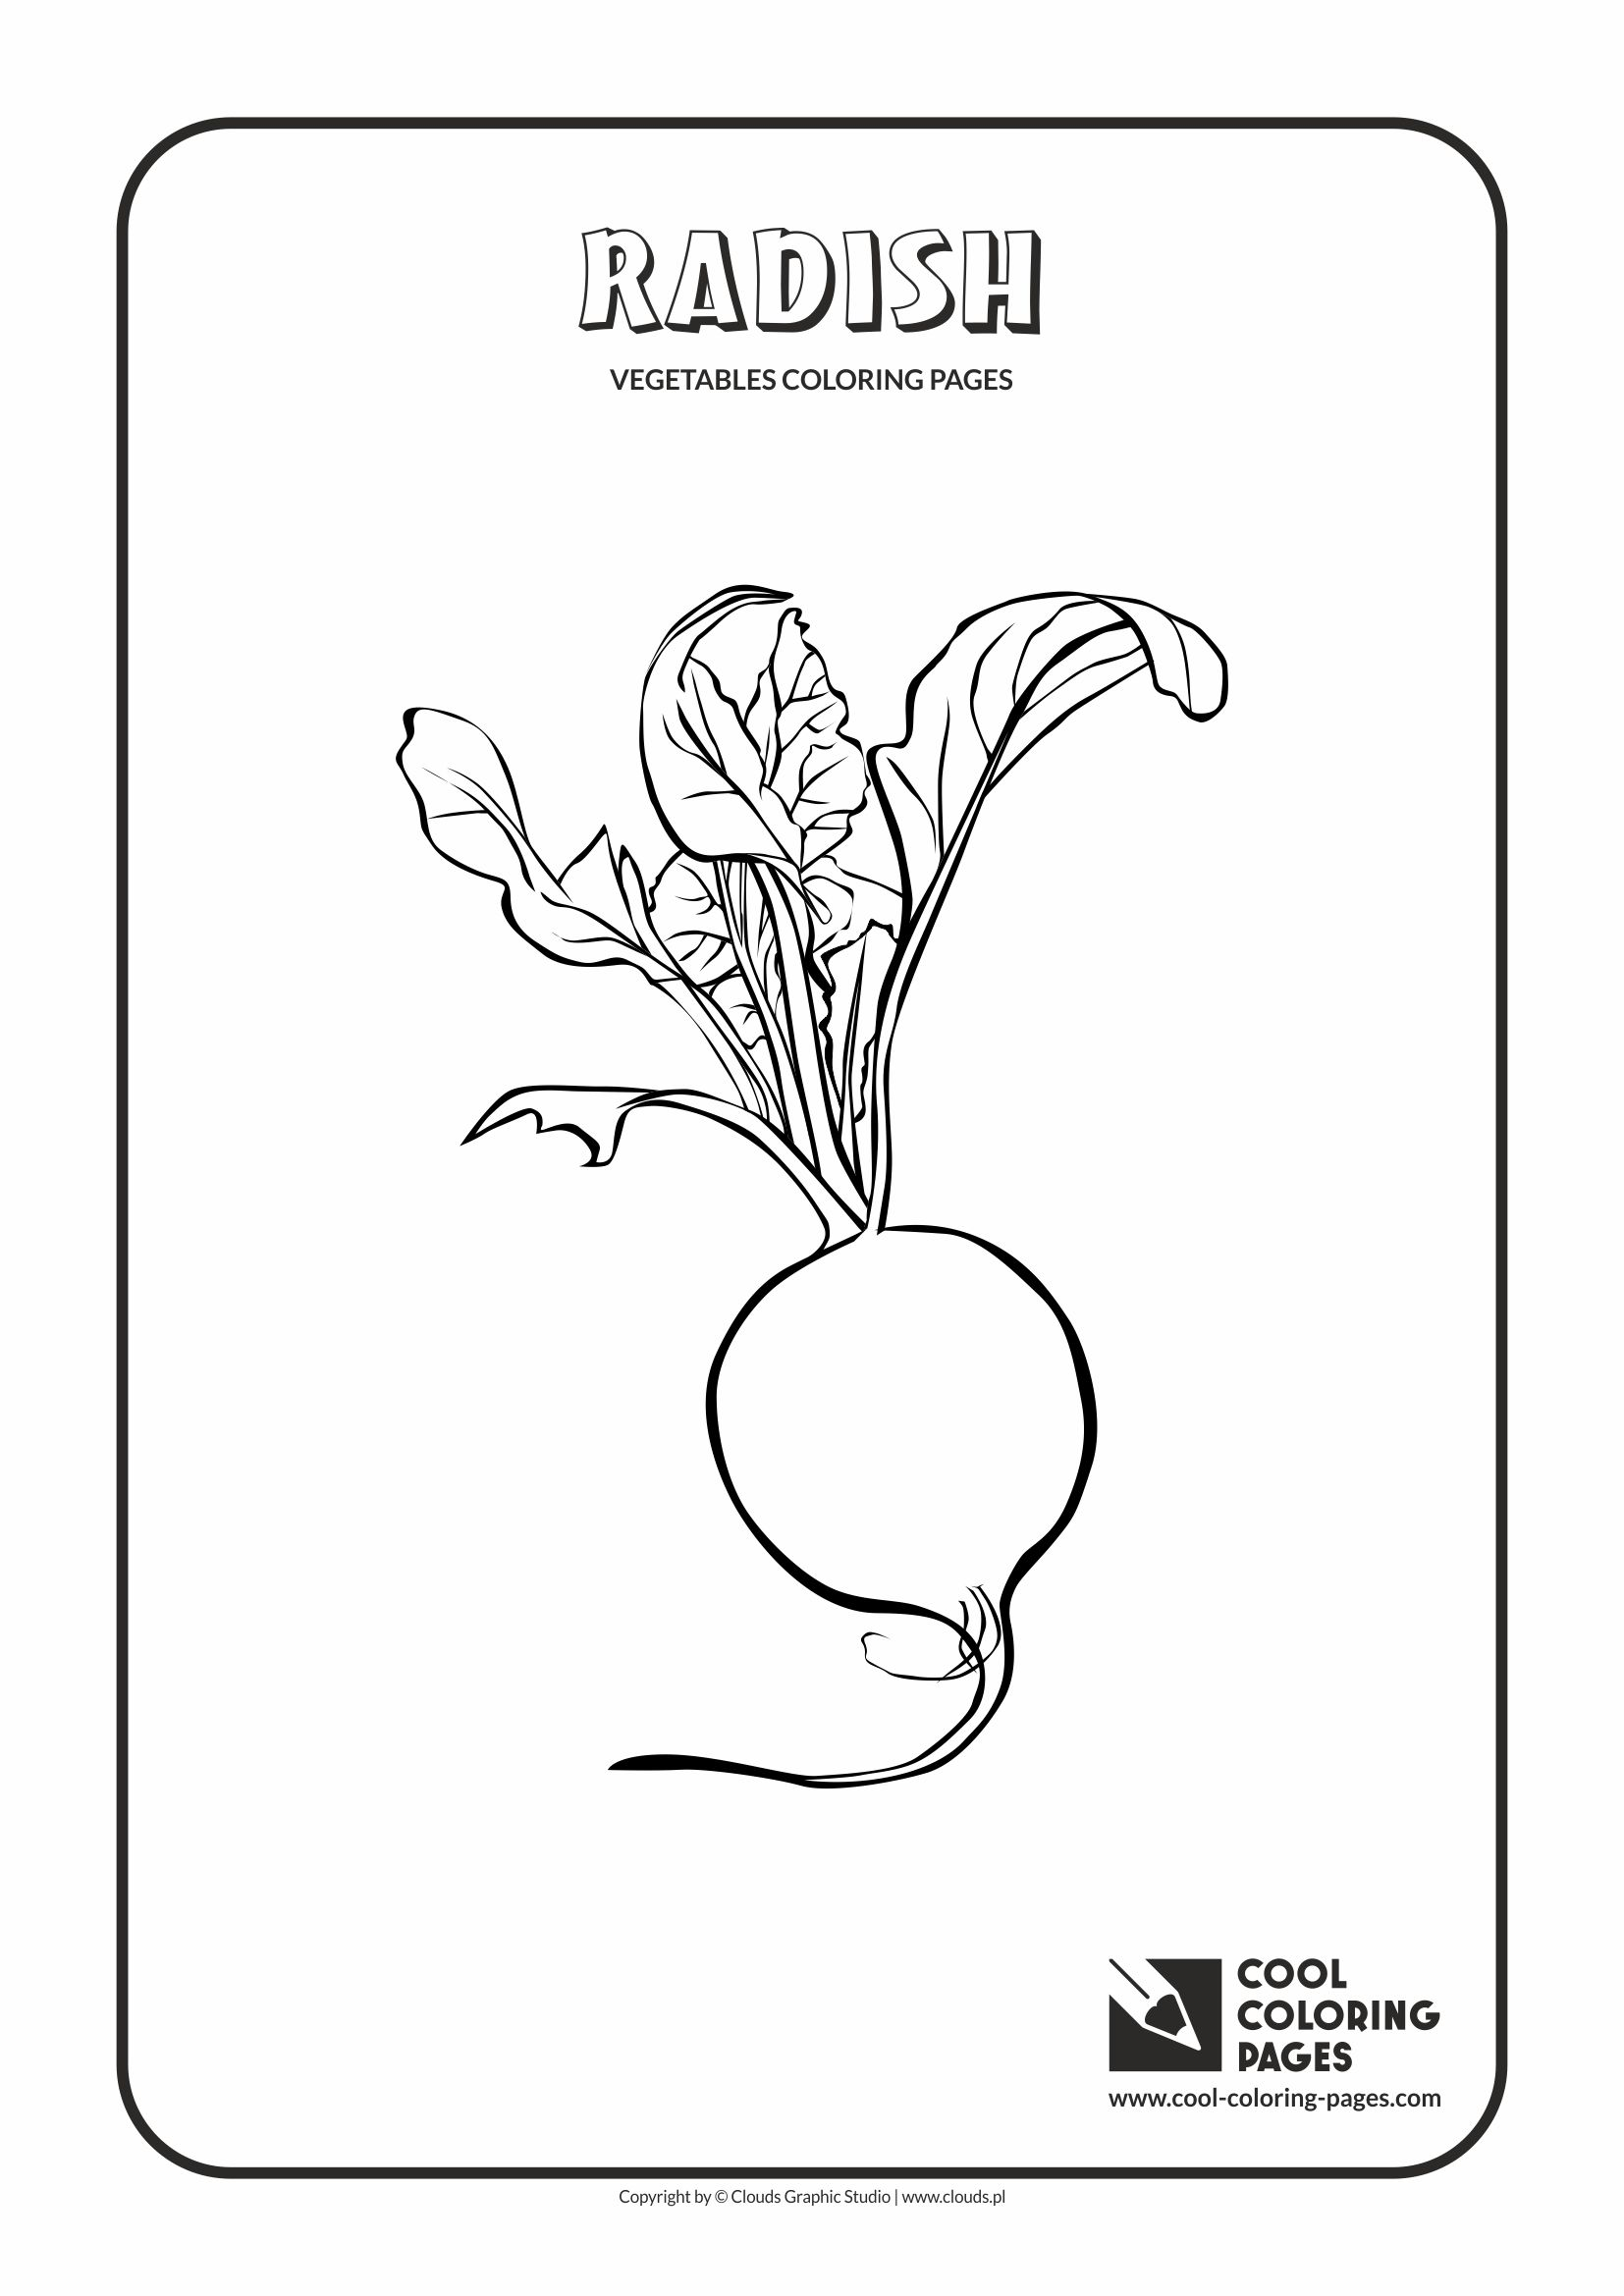 radish coloring page cool coloring pages